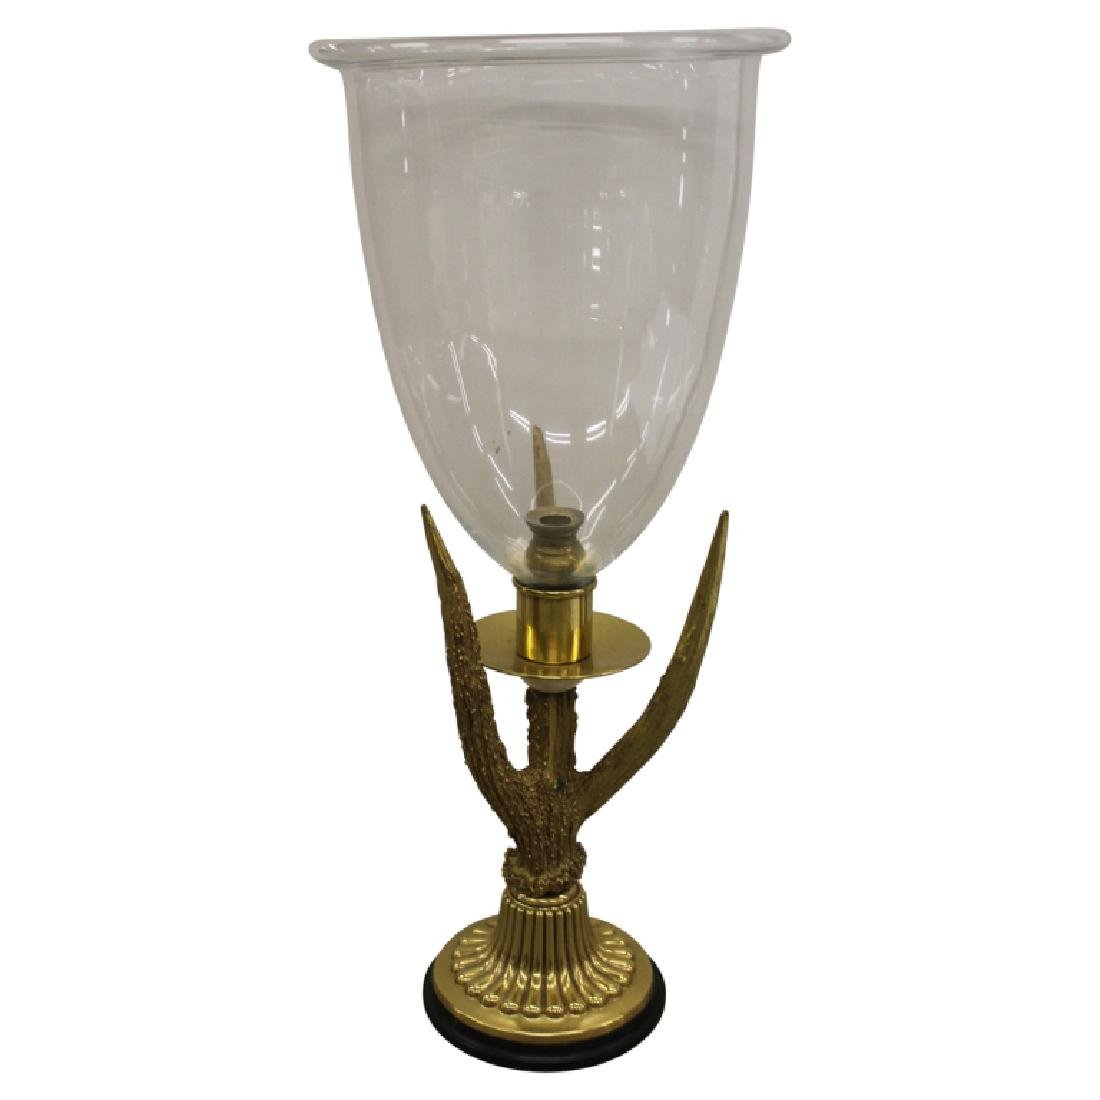 Brass and Glass Candlestick Centerpiece